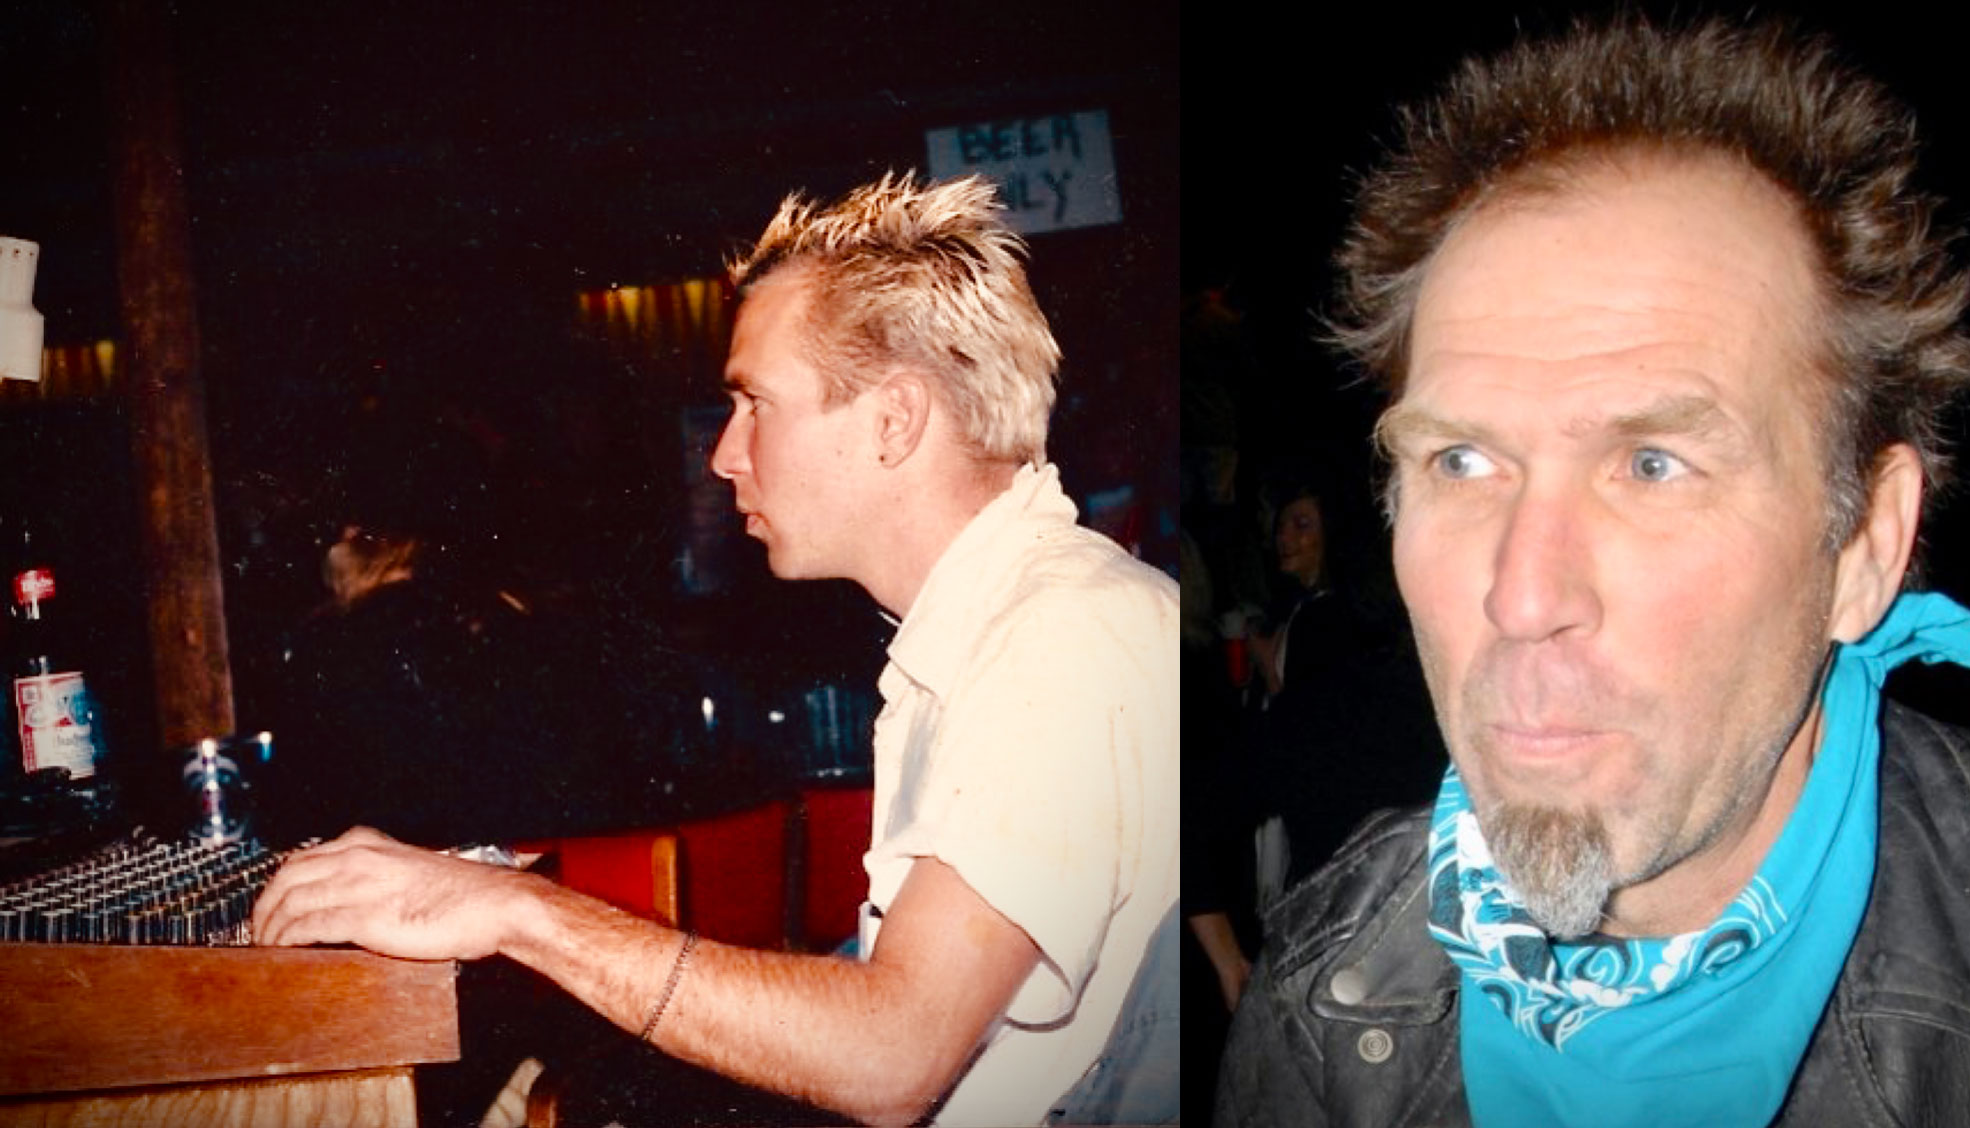 Left: Beno manning the sound board for a local punk band at a club on the ODU campus in c.1983. Right: Beno attending the Trolling Bones reunion show at the Norva in December 2009